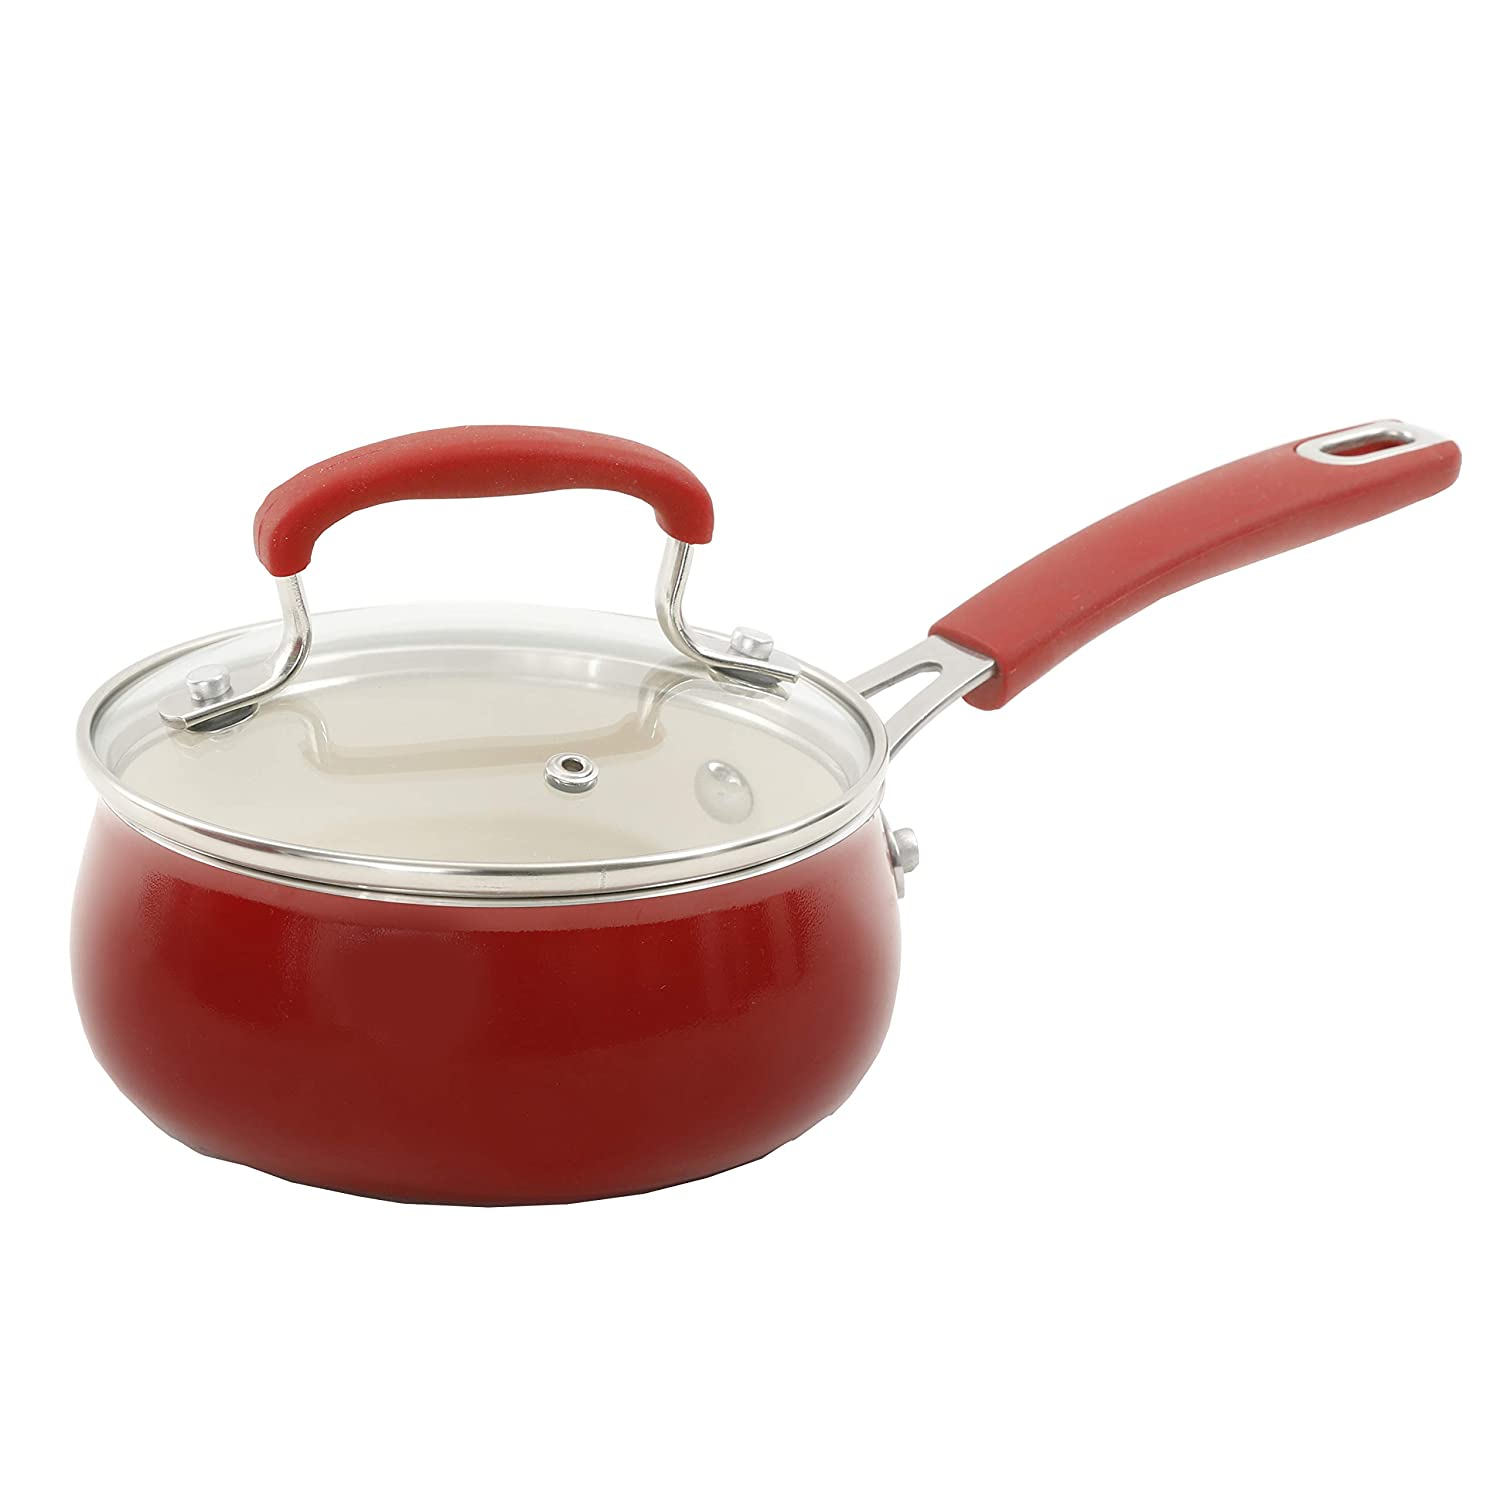 Sunset Red Classic Belly Pioneer Woman 17 Piece Cookware Set Porcelain Enamel Ceramic Nonstick Aluminum with Cast Iron Skillet THE PIONEER WOMAN